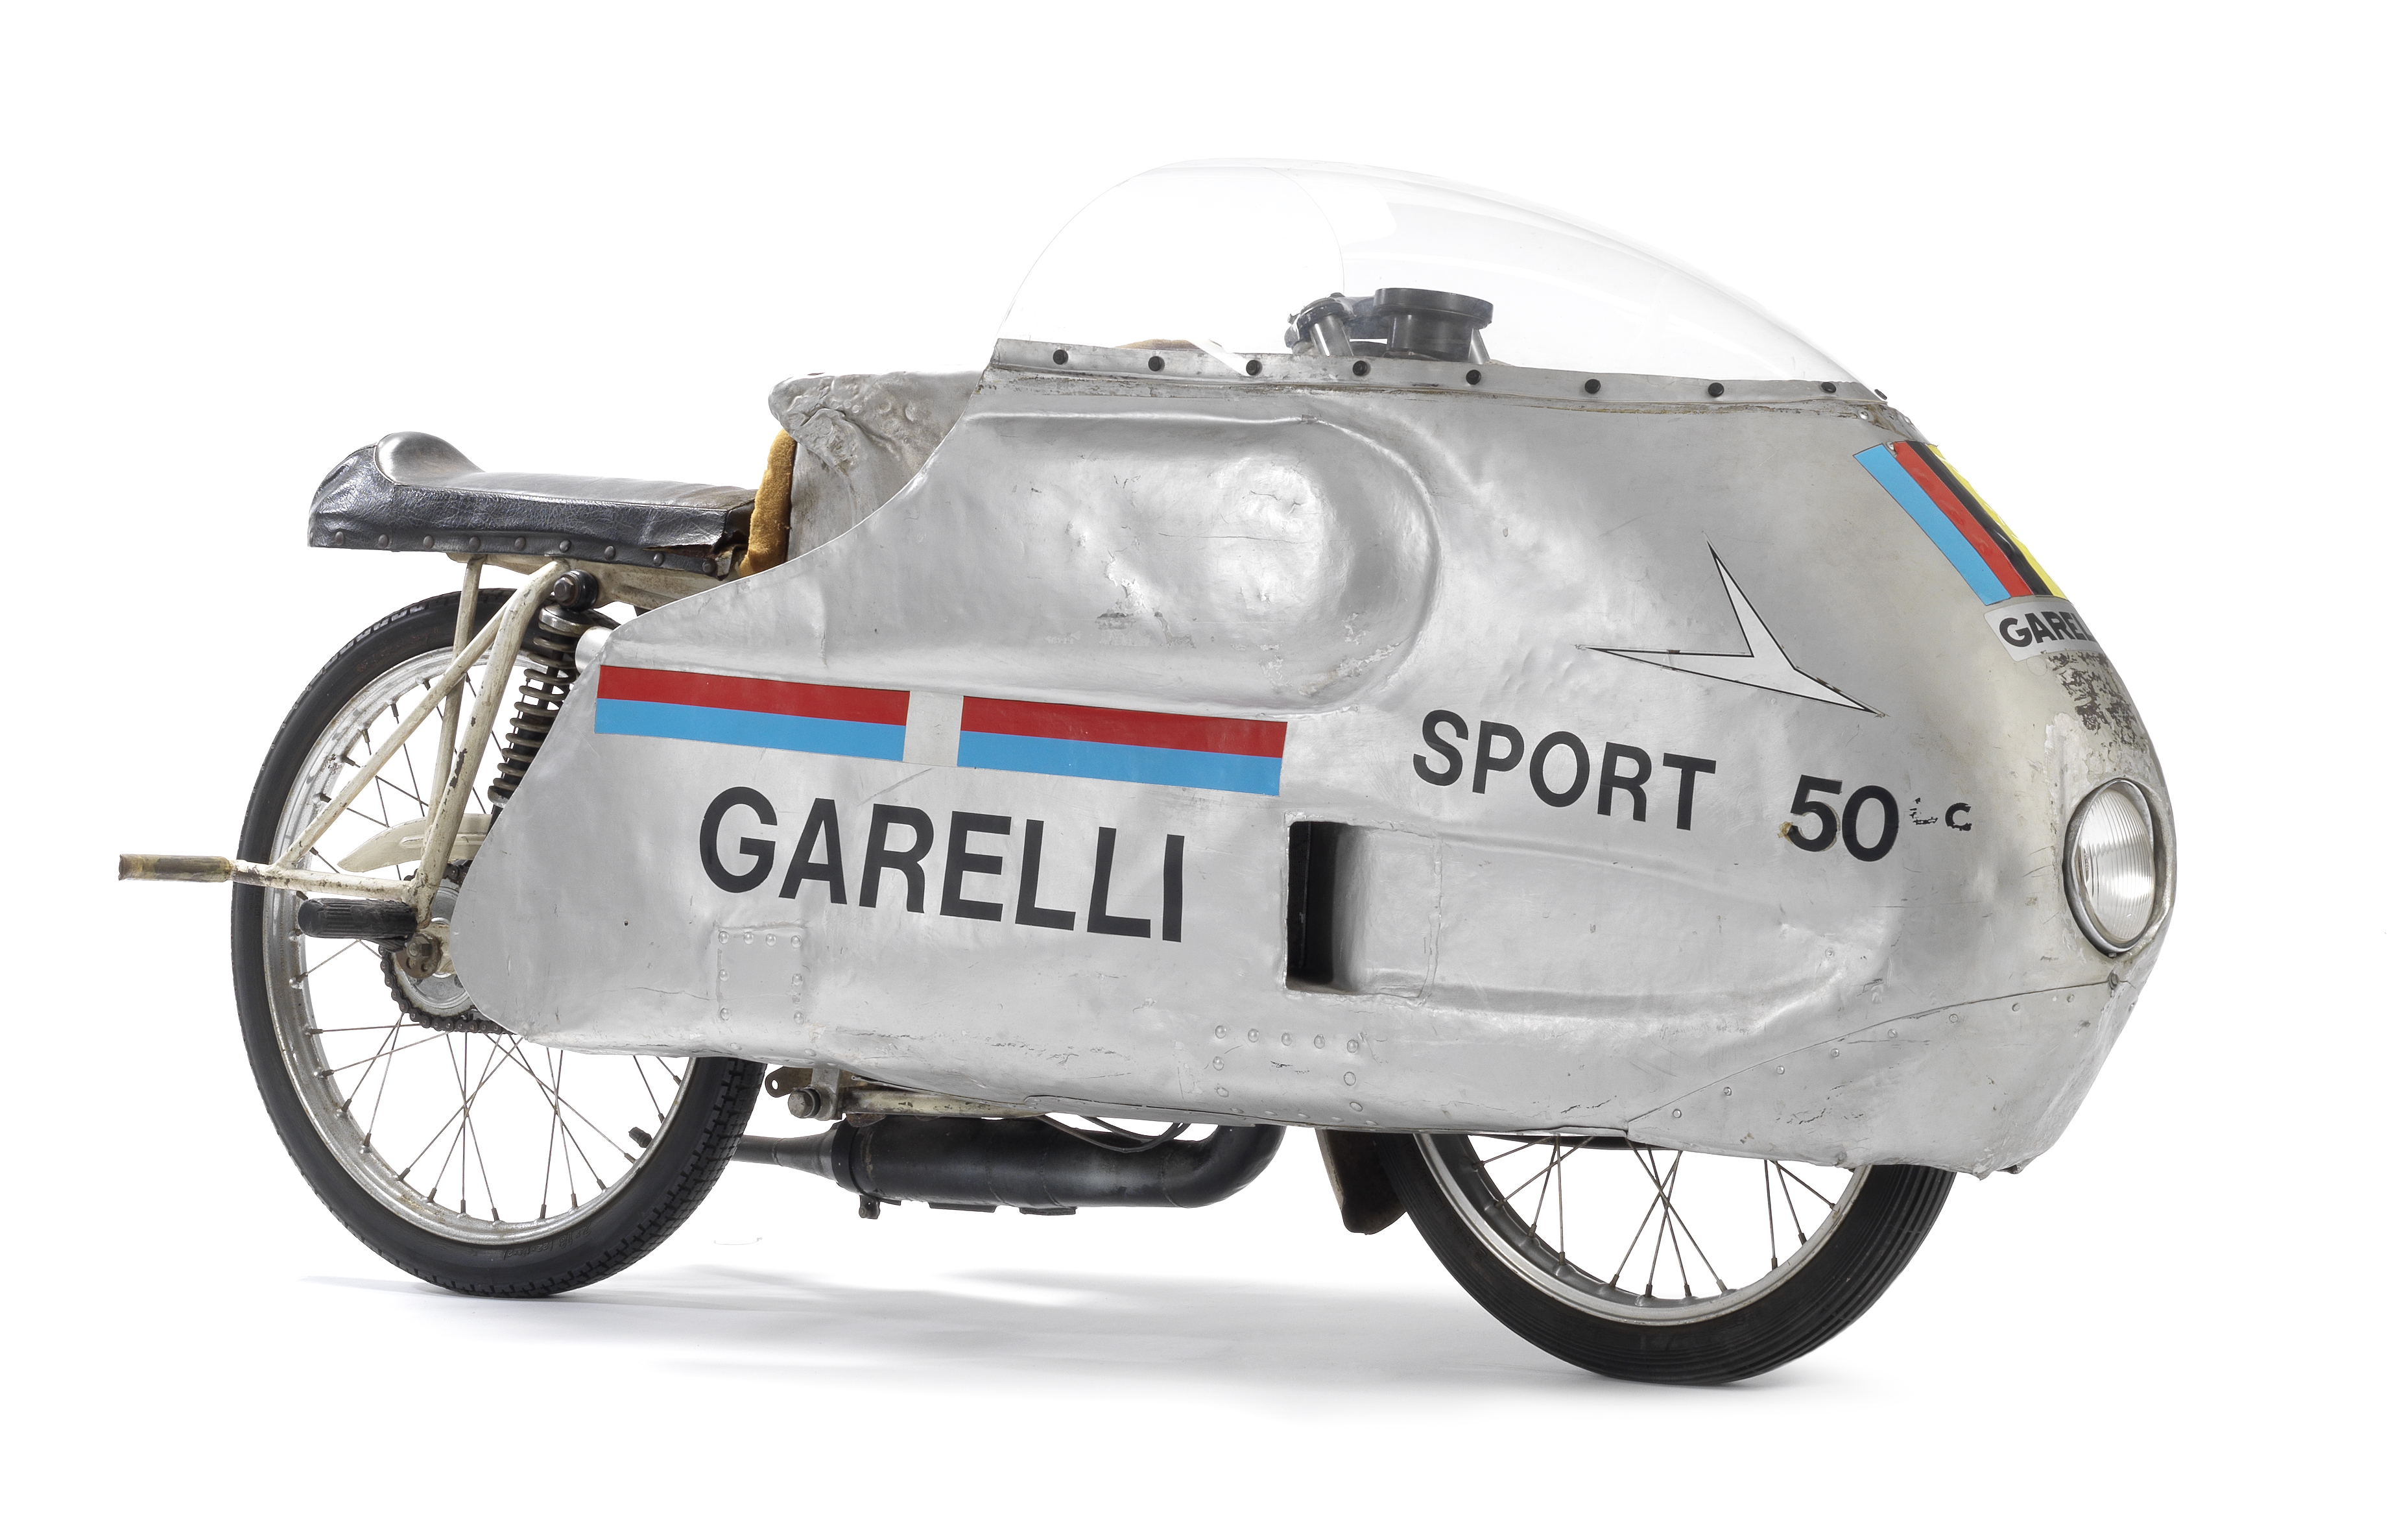 Garelli auction